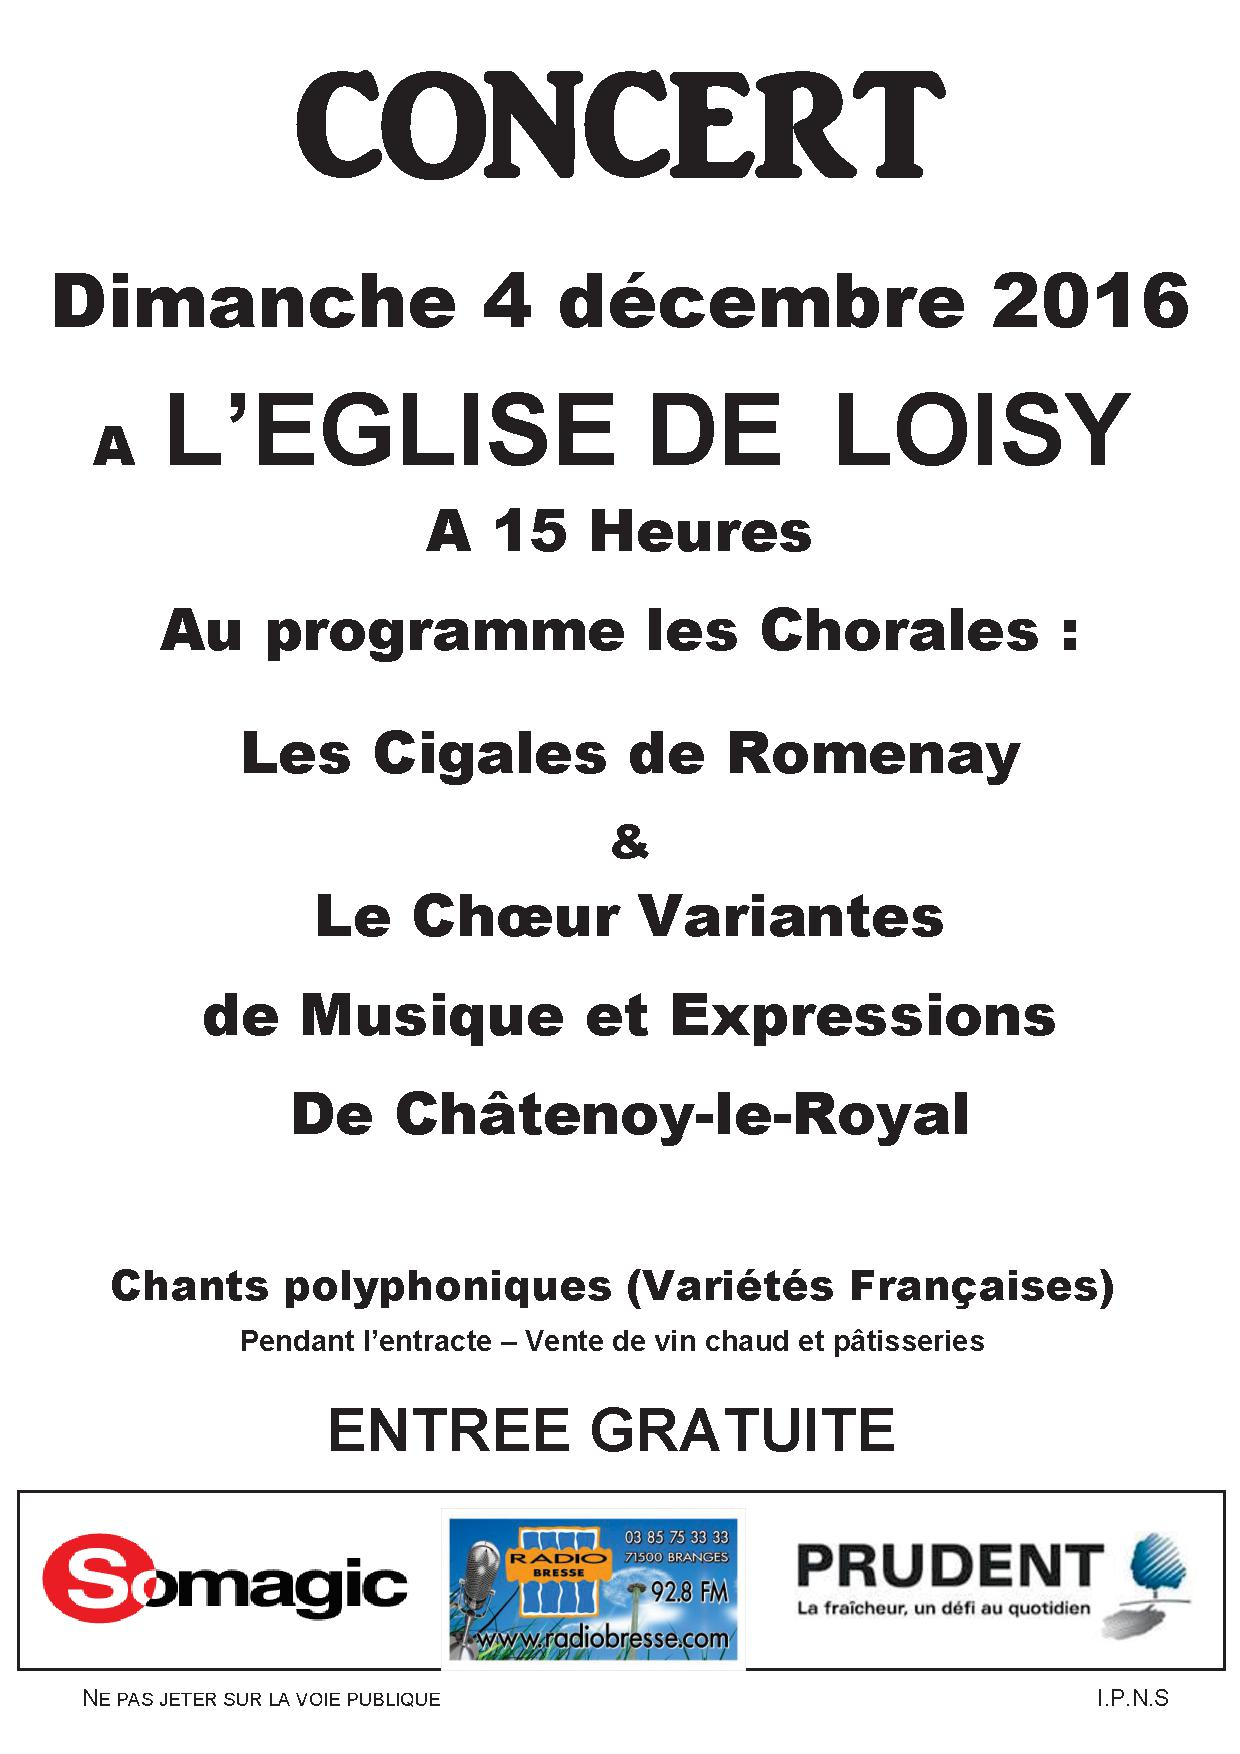 16_12_04_annonce-concert-loisy